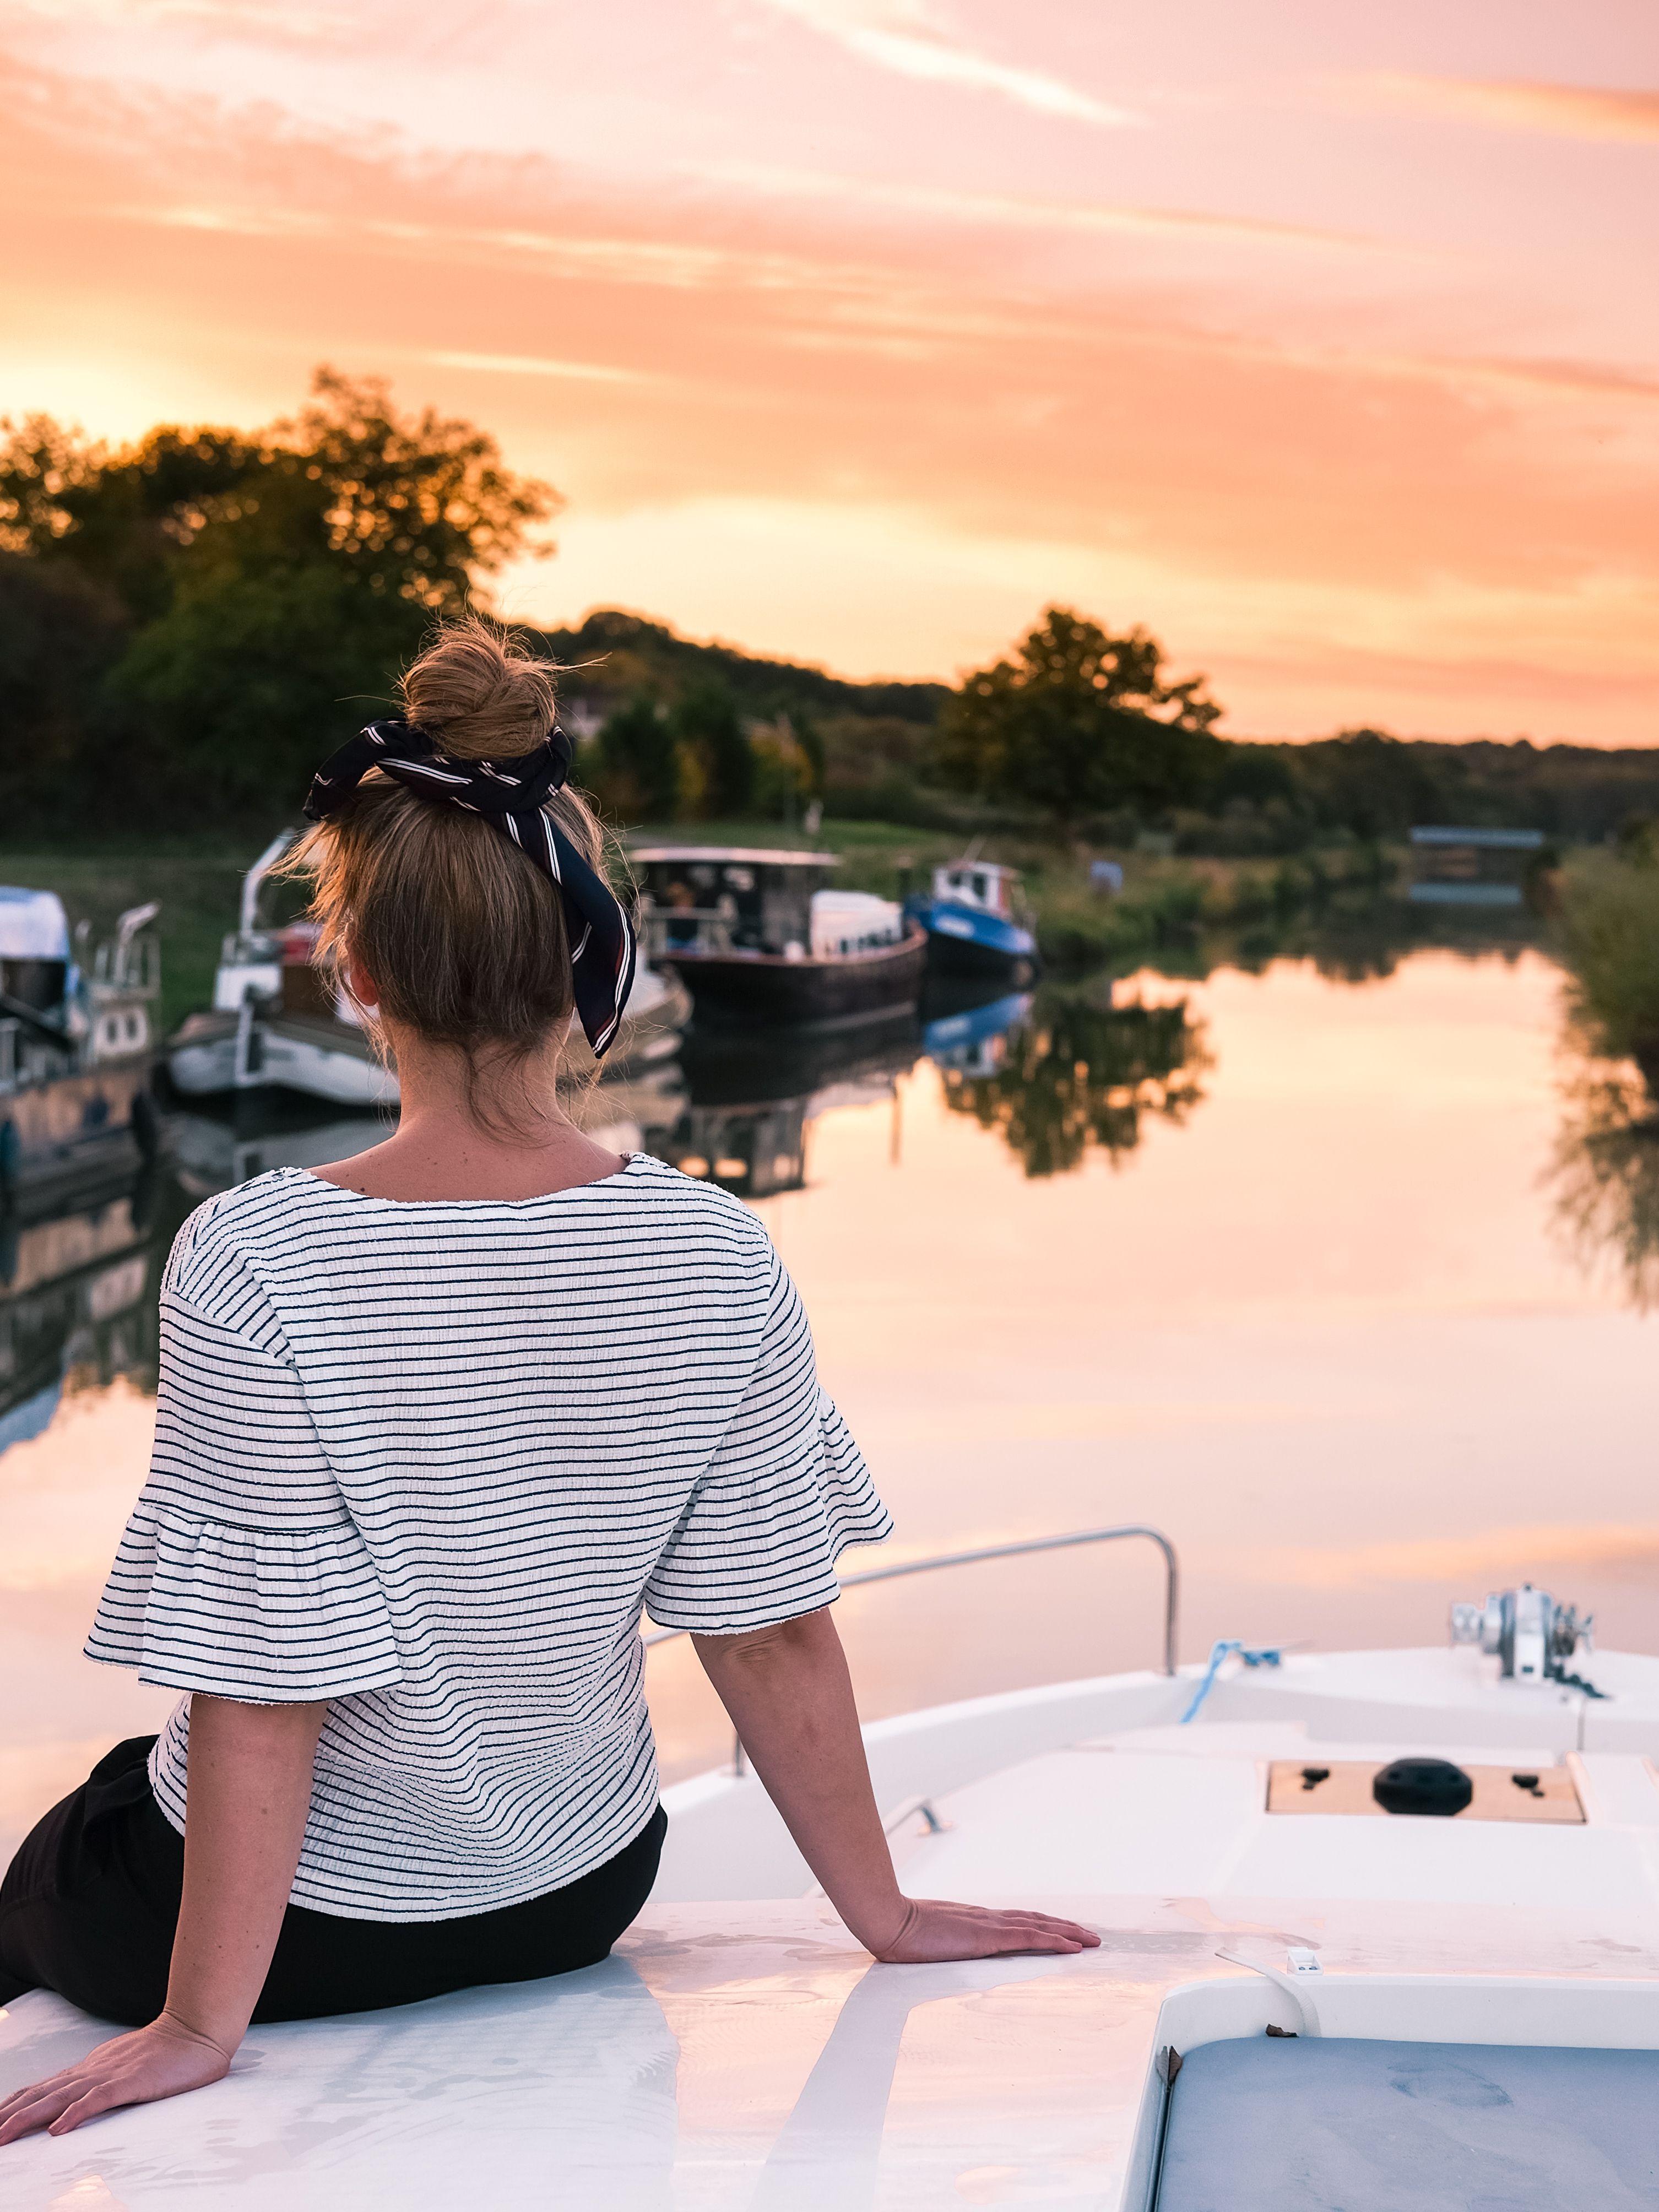 My Guide to A Self-Driving Barging Holiday in France